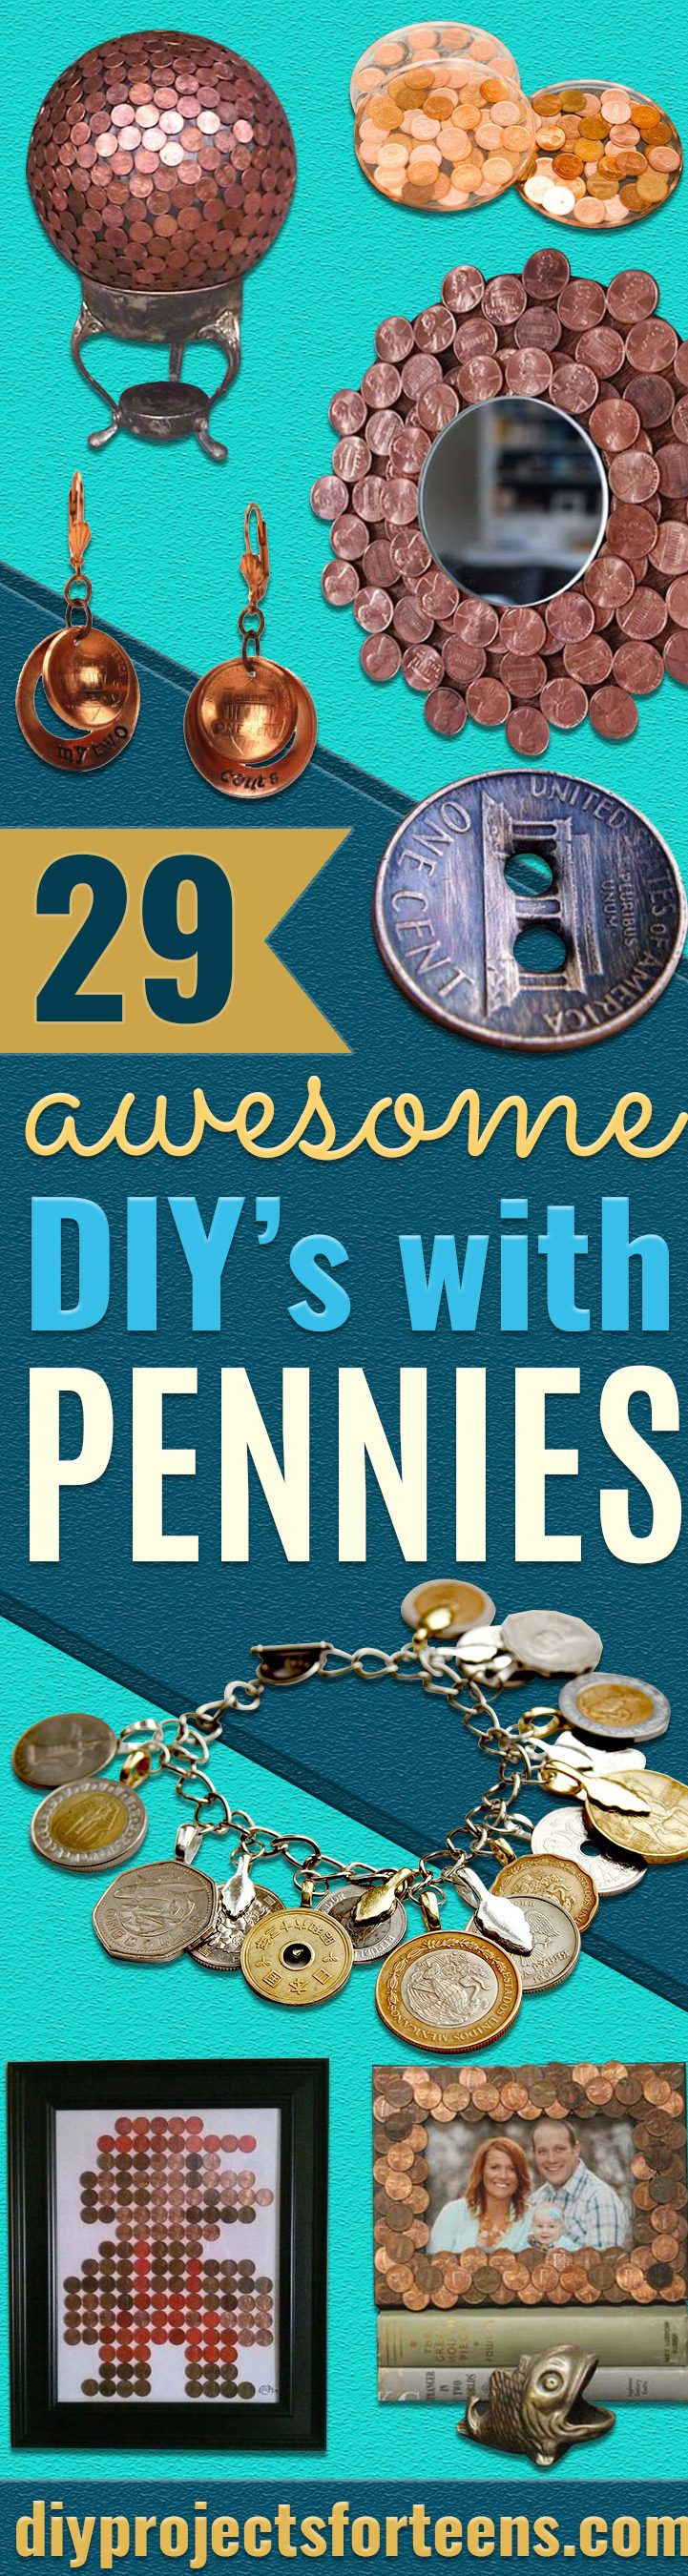 Cool DIYs Made With Pennies and Coins - Penny Walls, Floors, DIY Penny Table. Art With Pennies, Walls and Furniture Make With Money and Coins. Cool, Creative Tutorials, Home Decor and DIY Projects Made With Old Pennies - Cool DIY Projects and Crafts for Teens